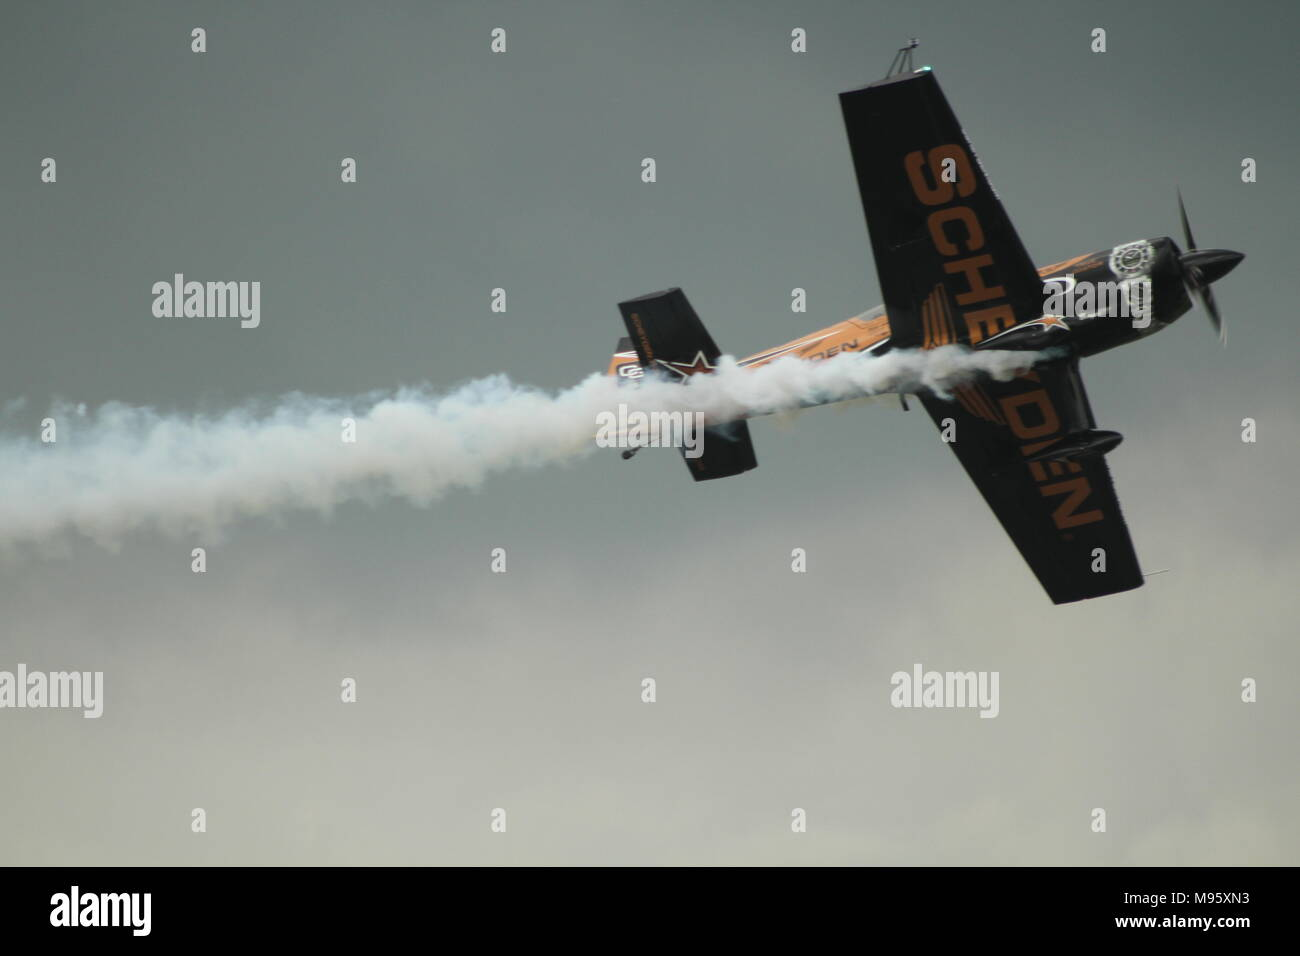 Aerobatic Plane Smoking while low flying at an air show - Stock Image